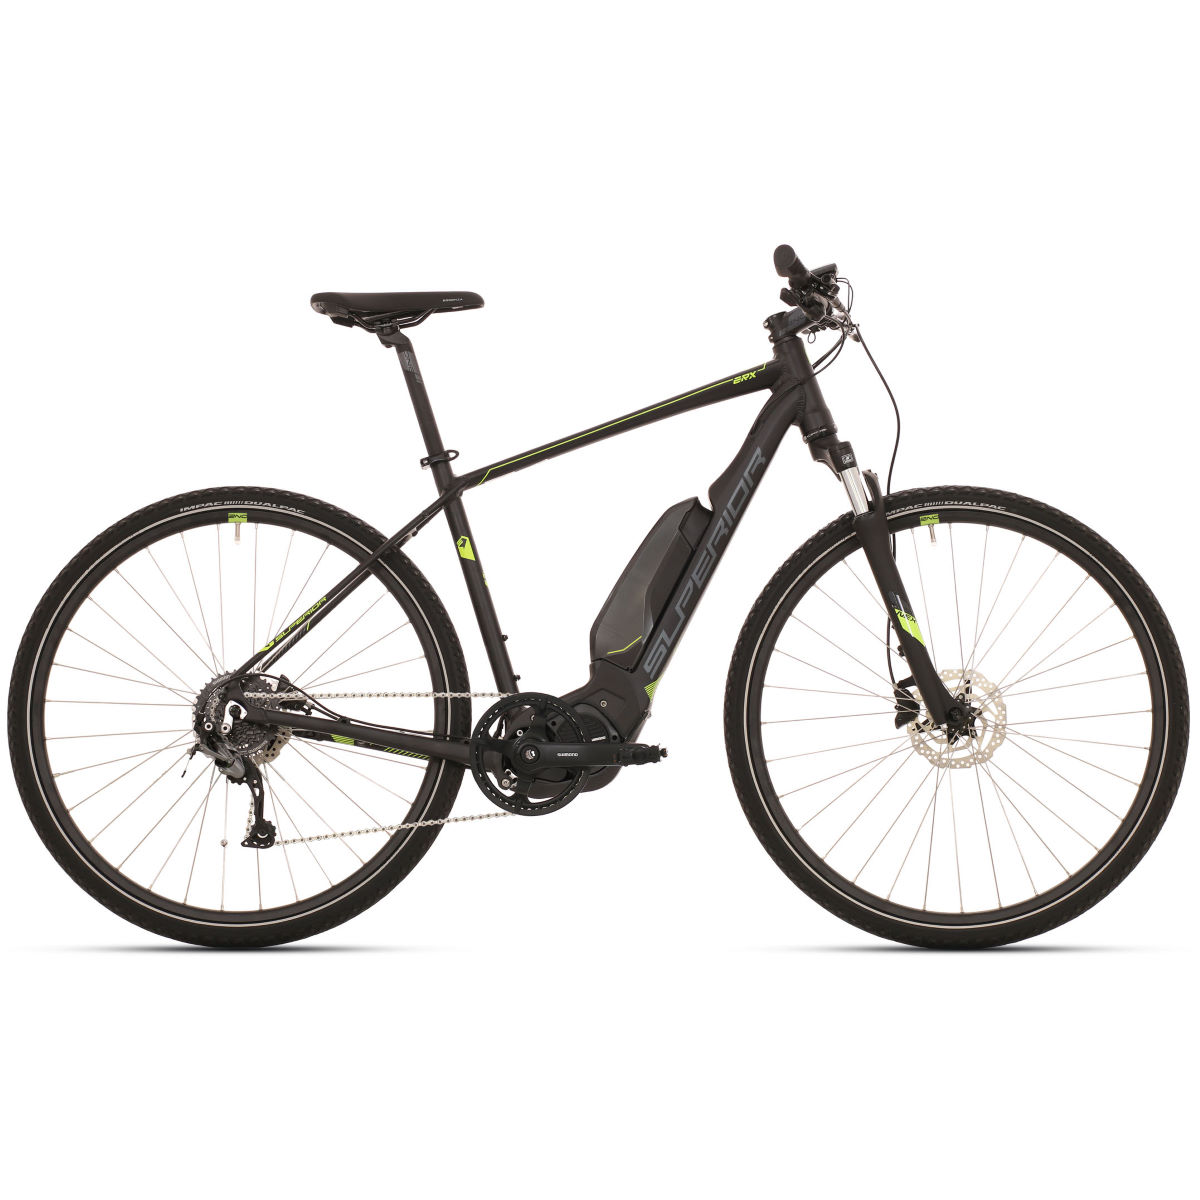 Superior Superior eRX 650 Urban E-Bike (2020)   Electric Urban Bikes